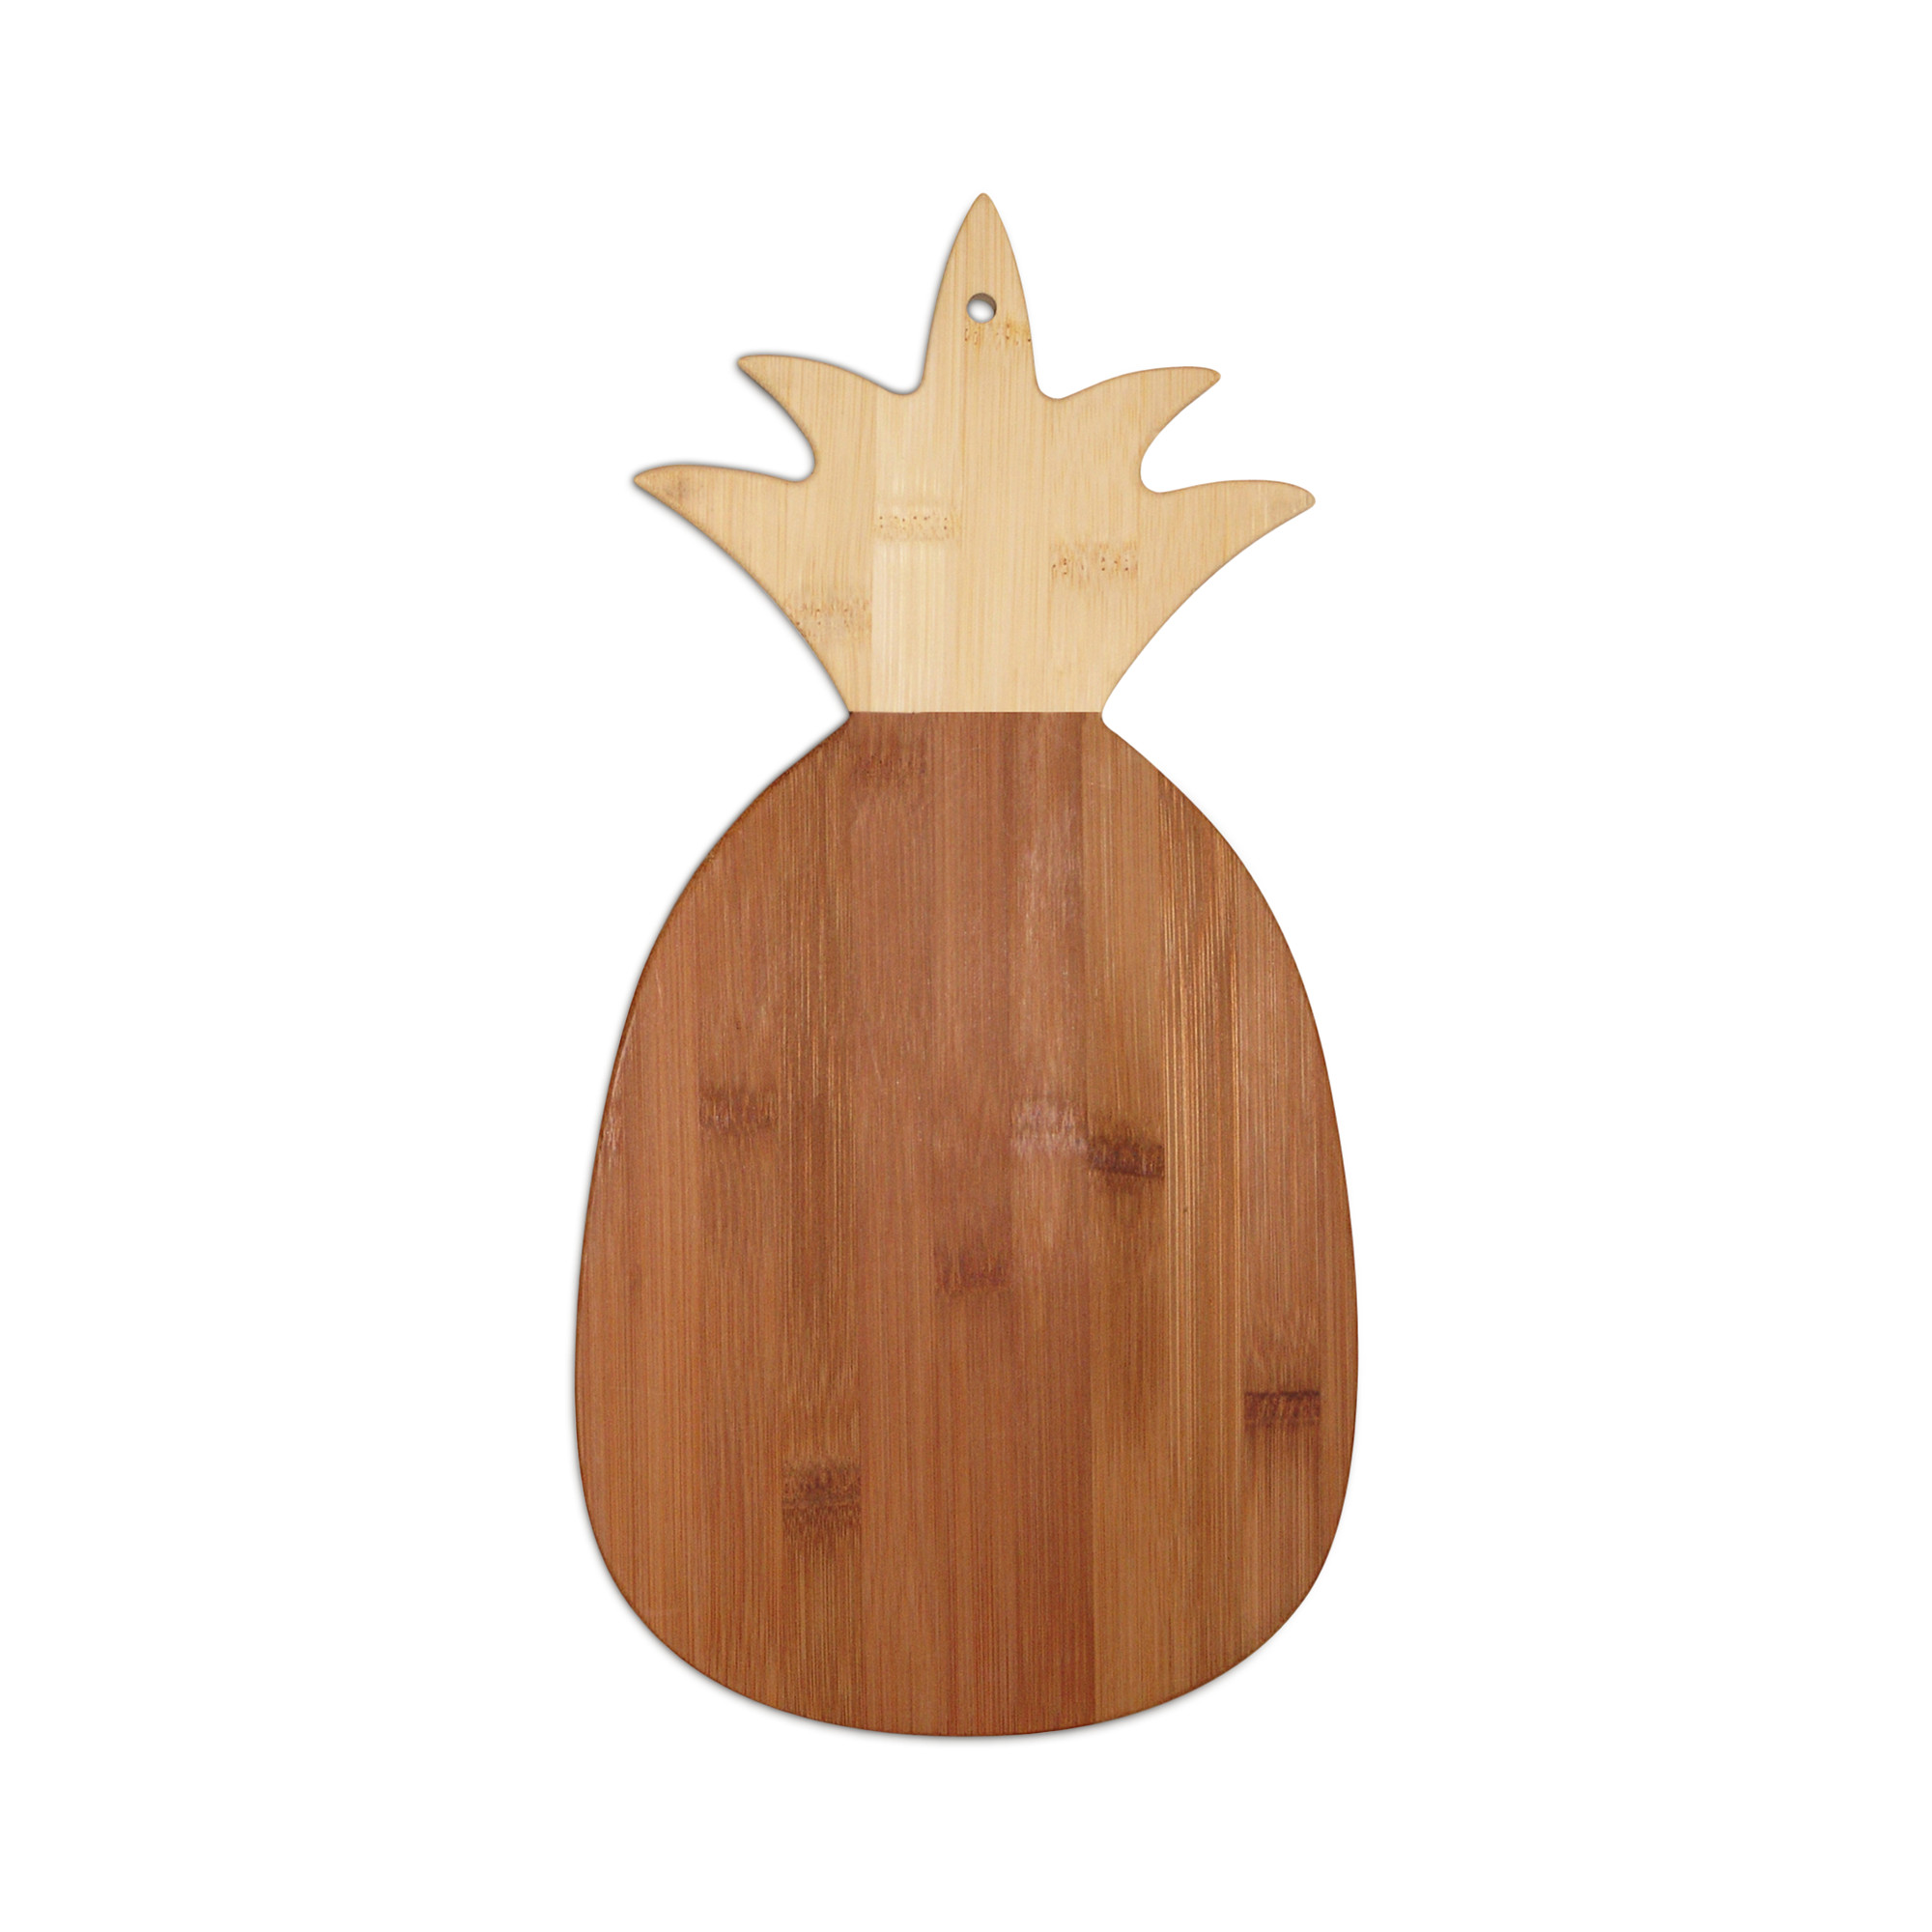 Totally Bamboo Pineapple Cutting Board at Bloomingdale's, $19.99